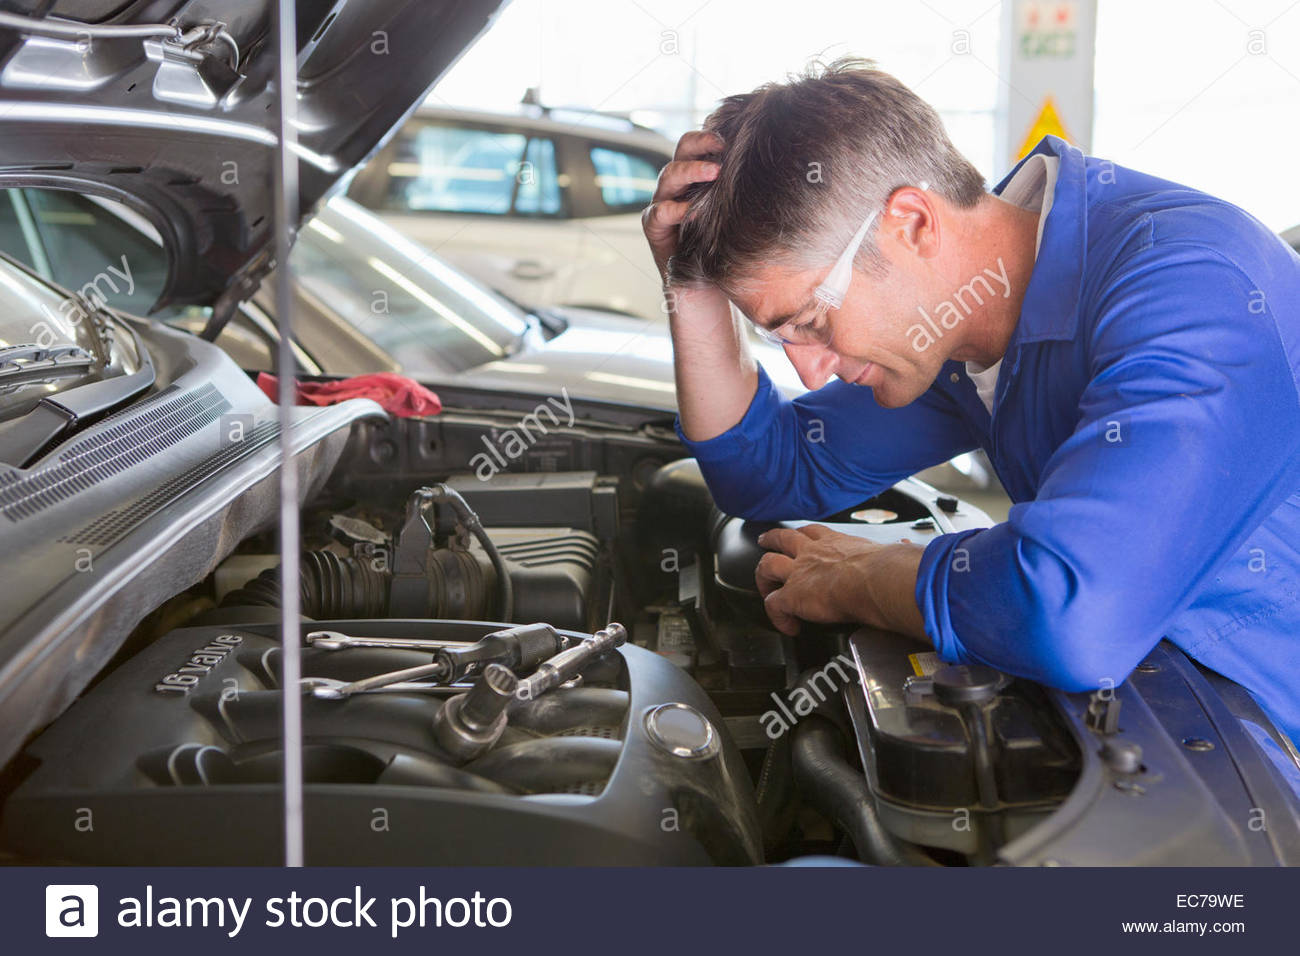 Mechanic baffled by problem with car - Stock Image